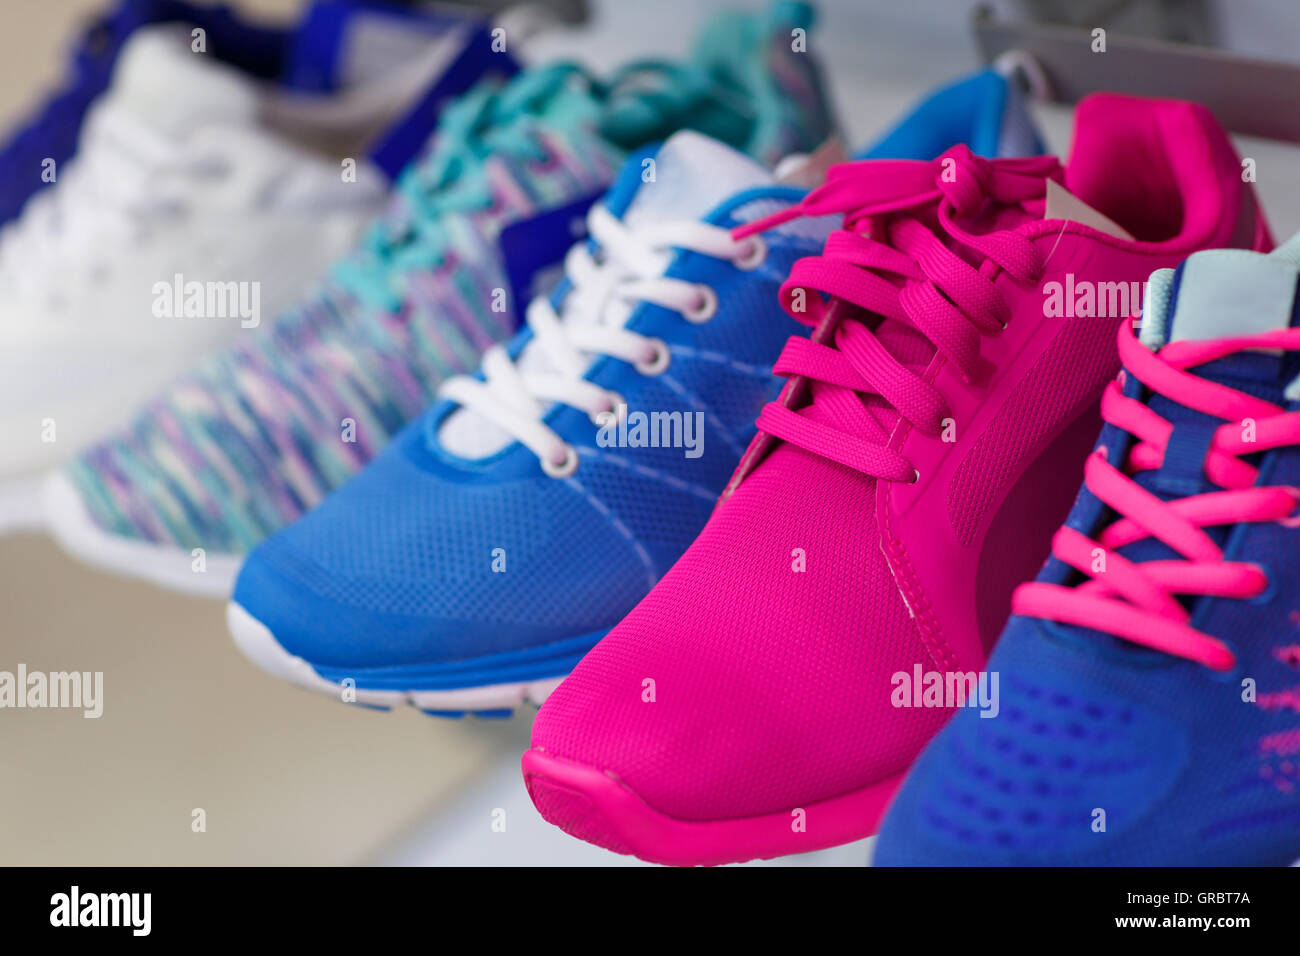 Variété de la sneakers colorés dans la boutique Photo Stock